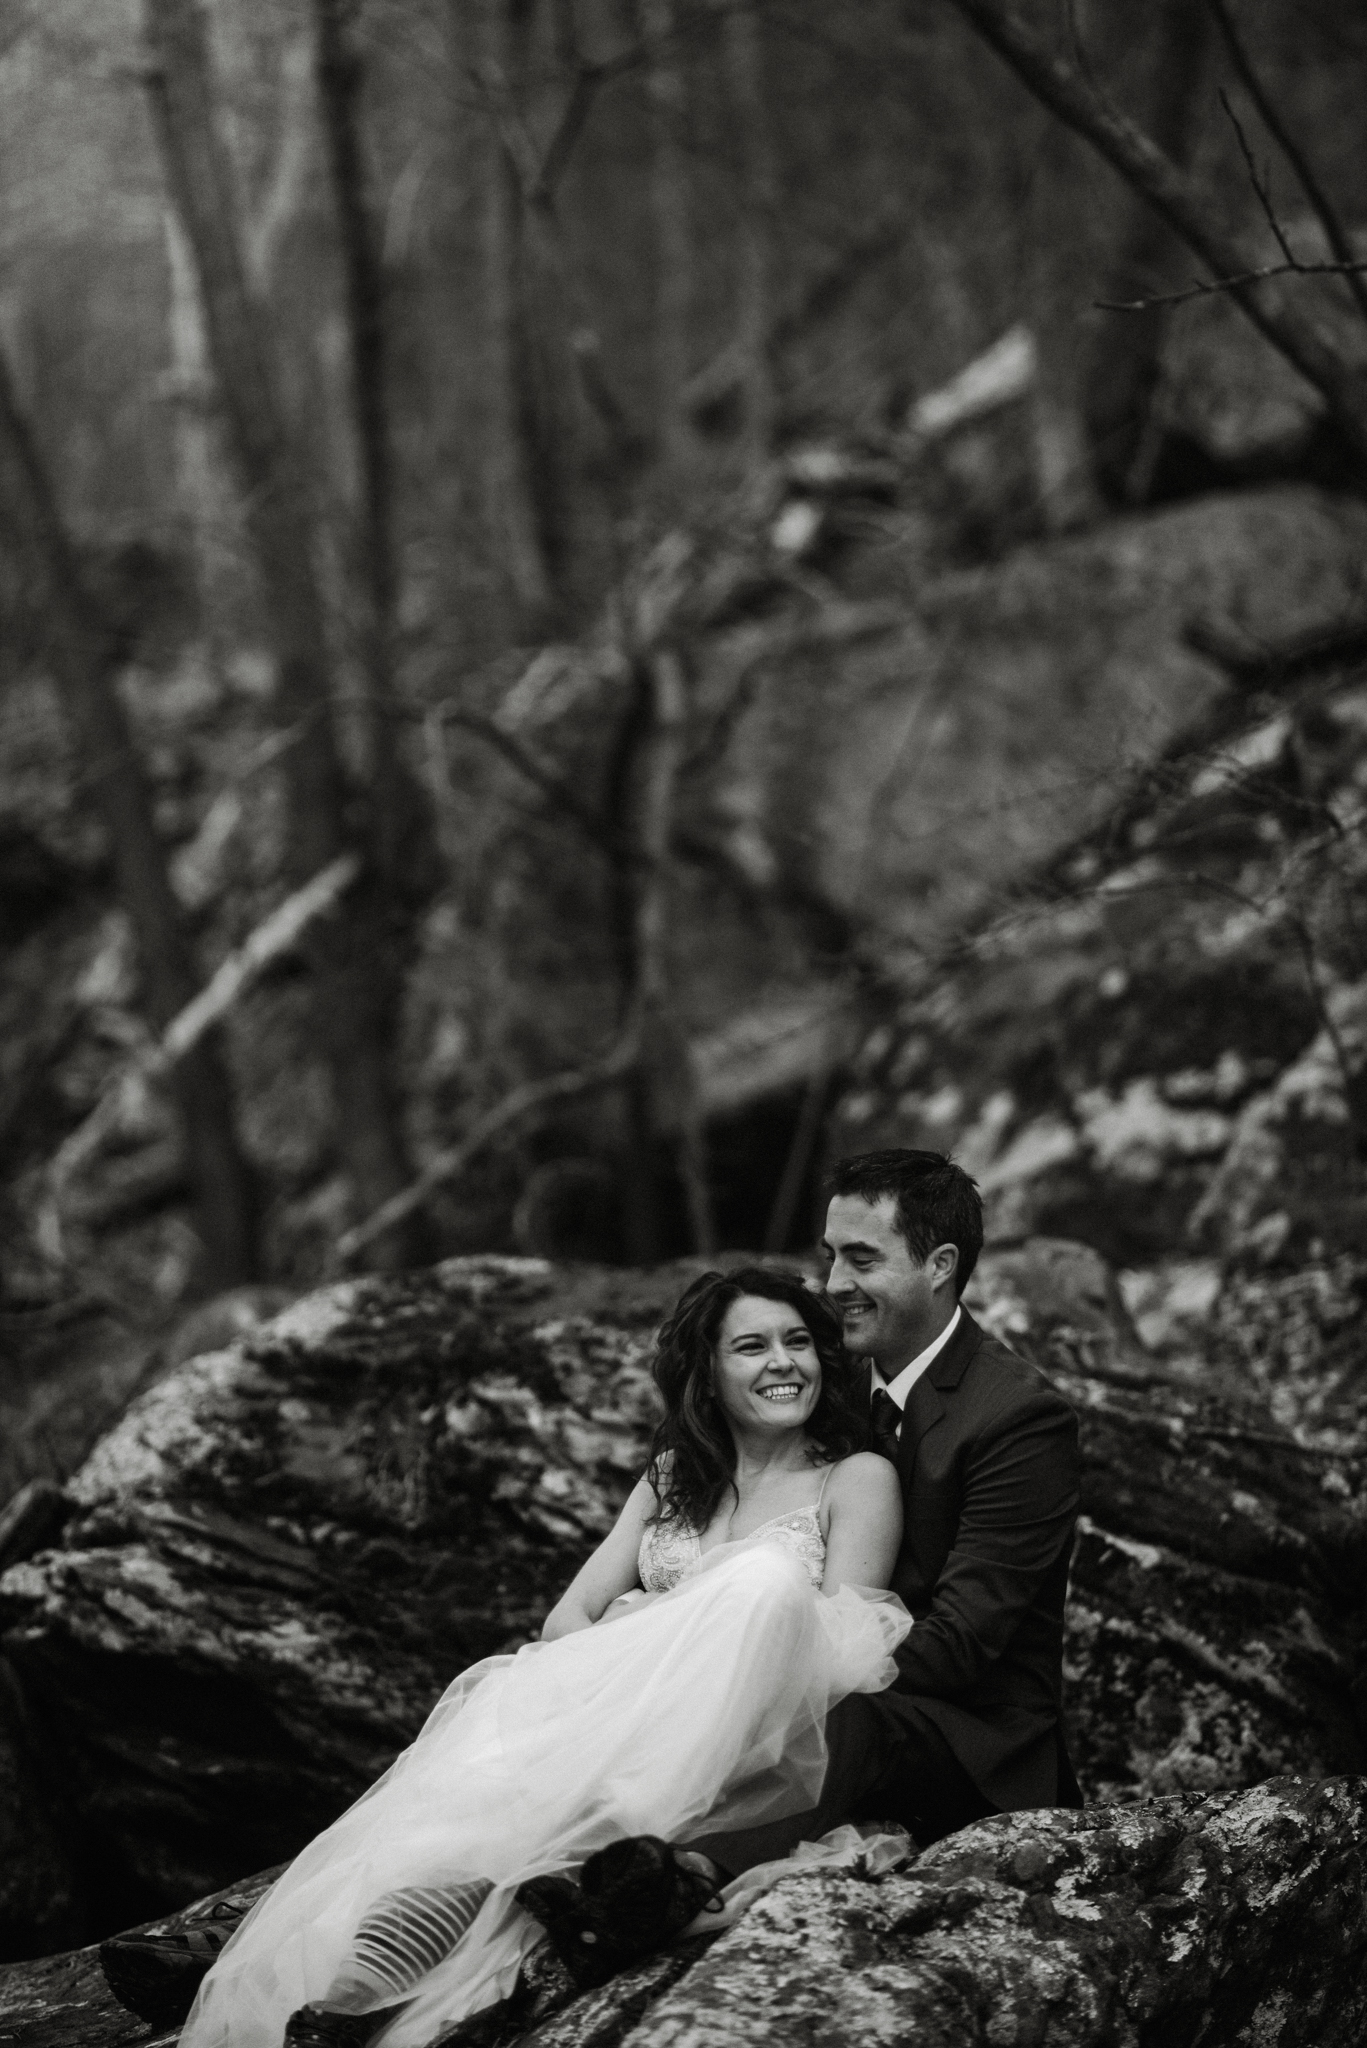 Stephanie and Steve - Shenandoah National Park Elopement - Sunrise Hiking Elopement - Adventurous Elopement - Virginia Elopement Photographer - Shenandoah national Park Wedding Photographer - White Sails Creative_34.jpg